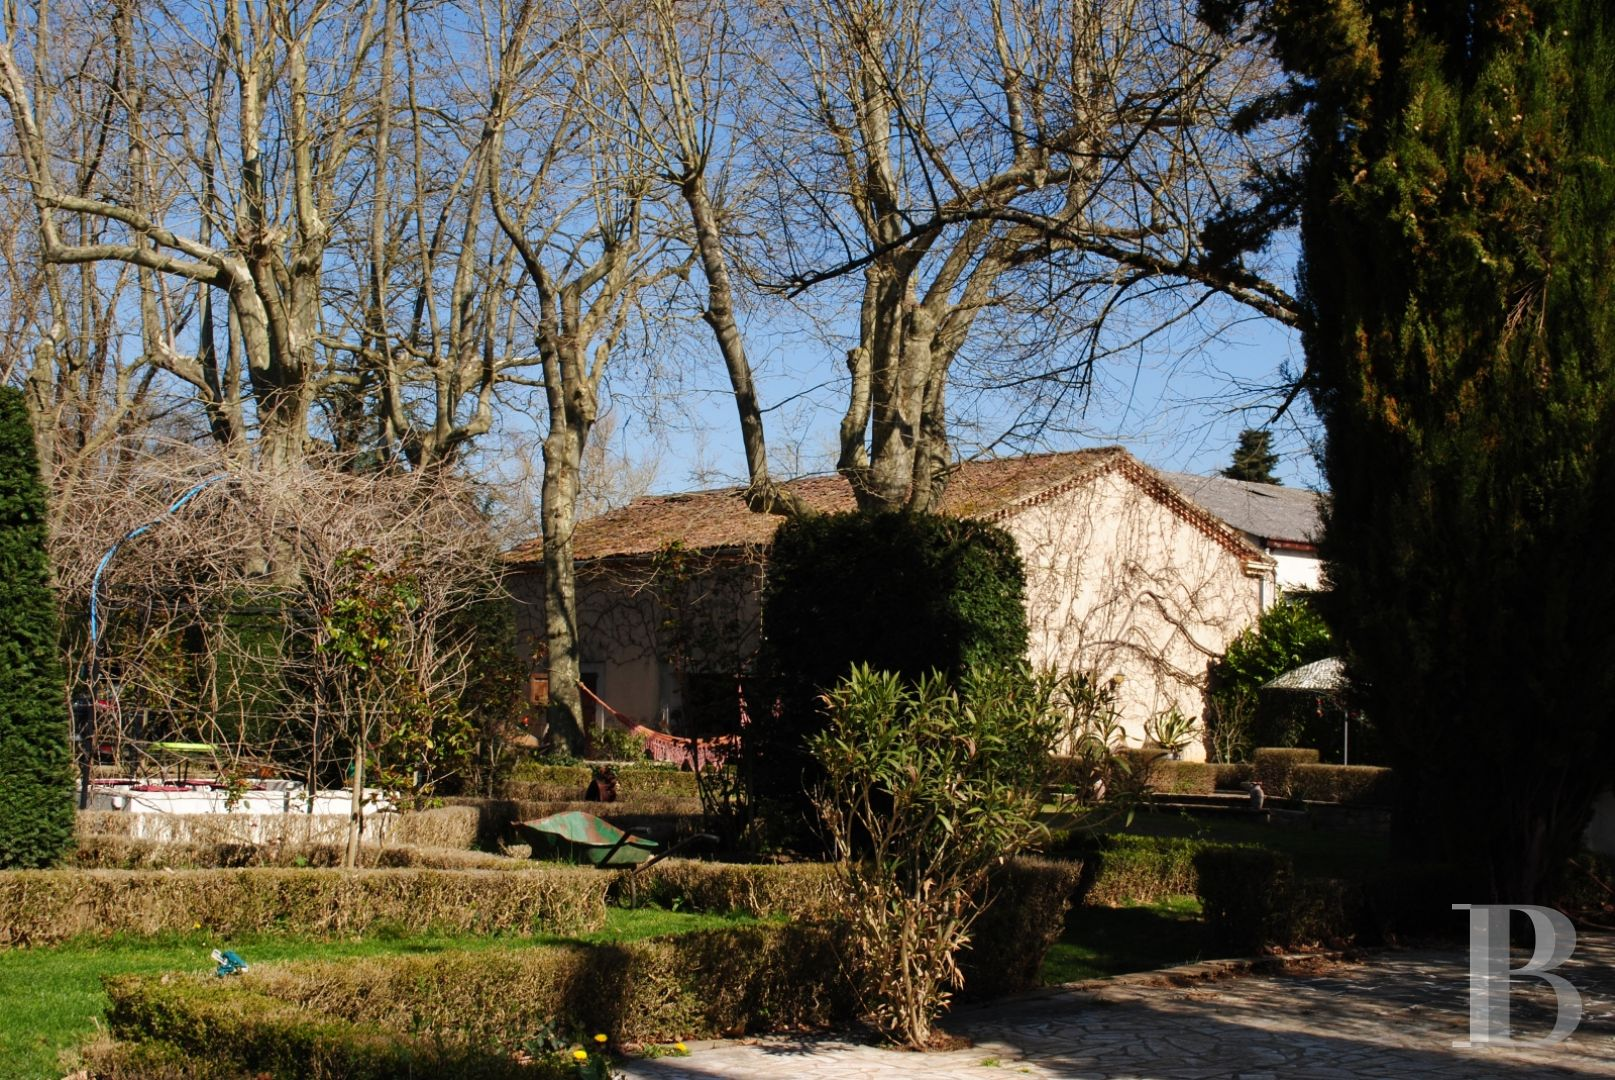 France mansions for sale midi pyrenees manors mills - 15 zoom